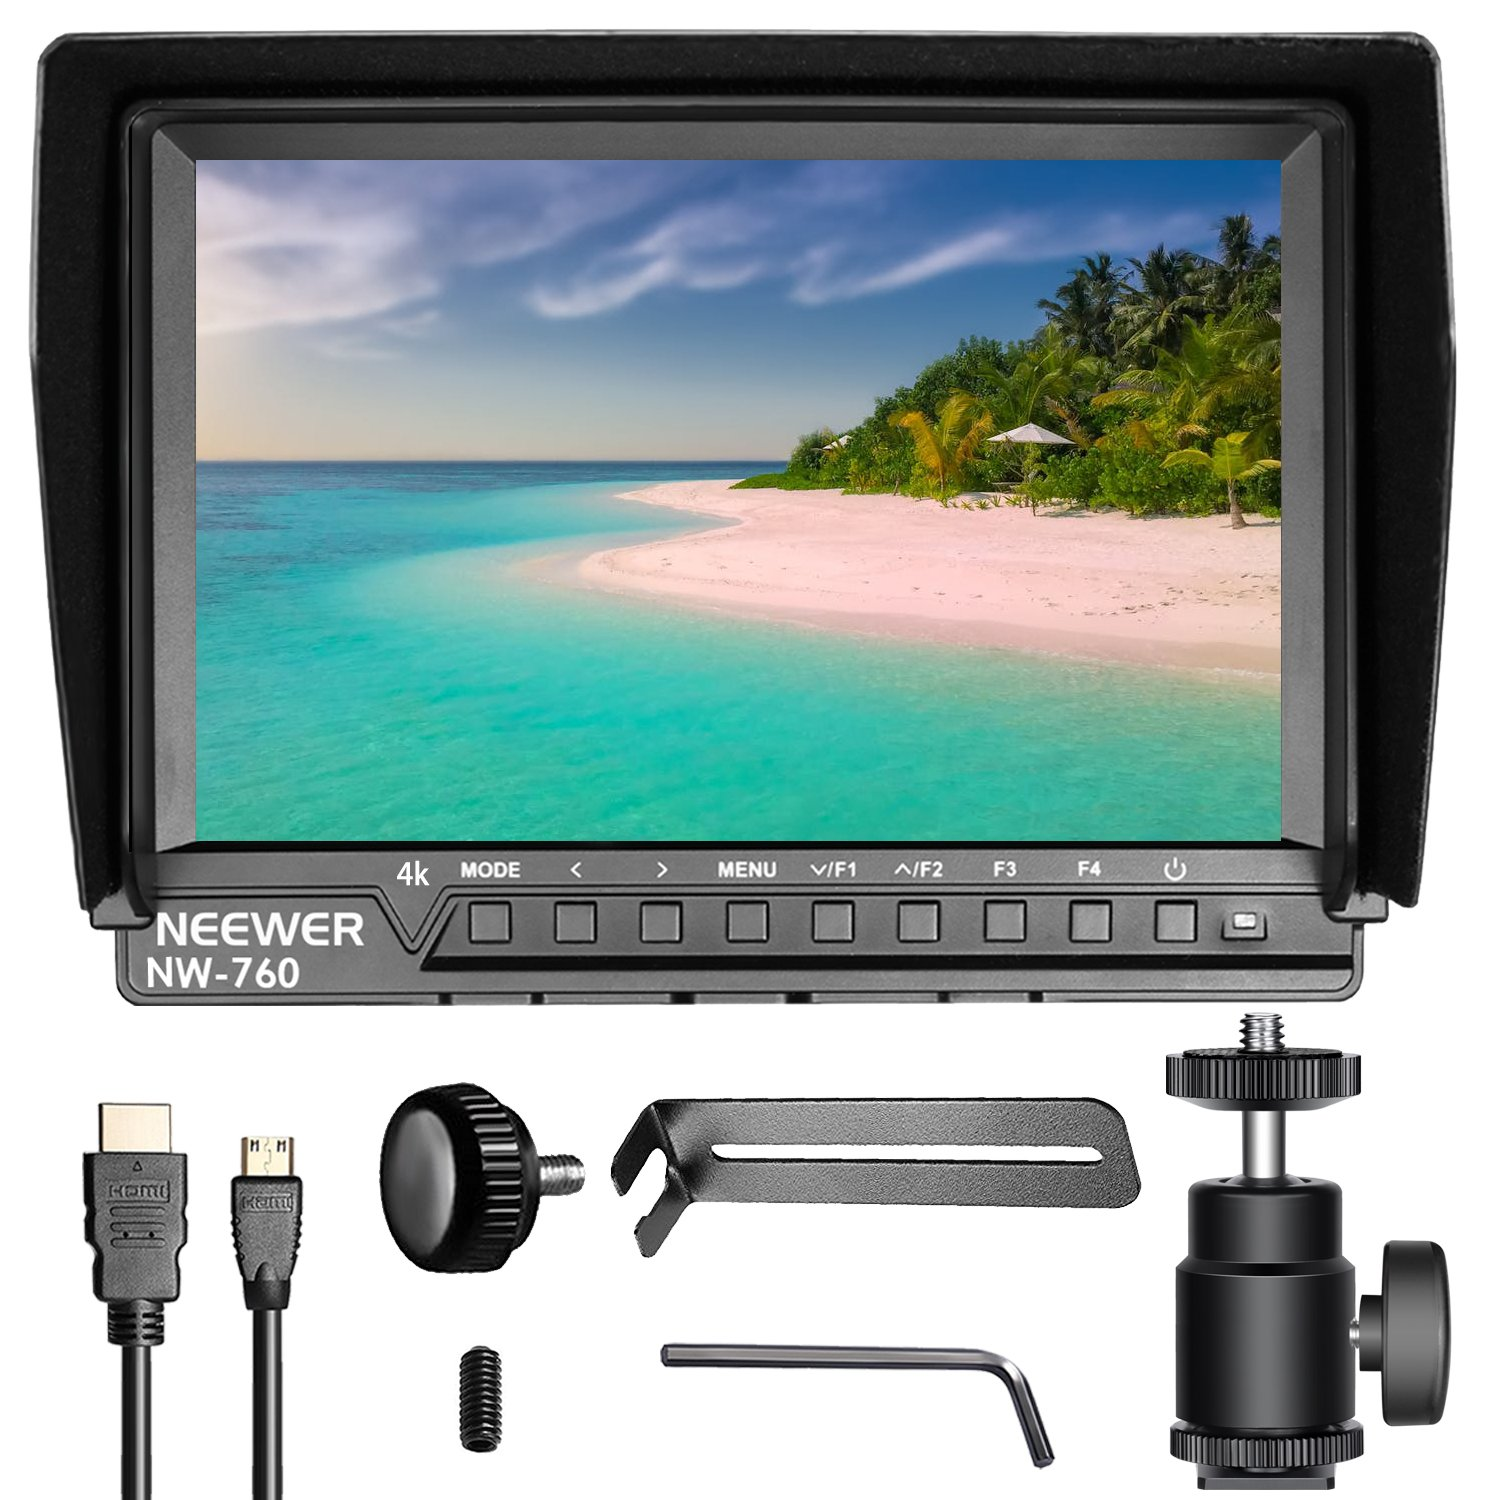 Neewer 7-inch Field Monitor with VGA/AV/HDMI Input IPS Screen 800:1 Contrast 800x480 High Resolution for Canon Nikon Sony Olympus DSLR Cameras and Camcorders (NW708-M) (Battery NOT Included) 10089508